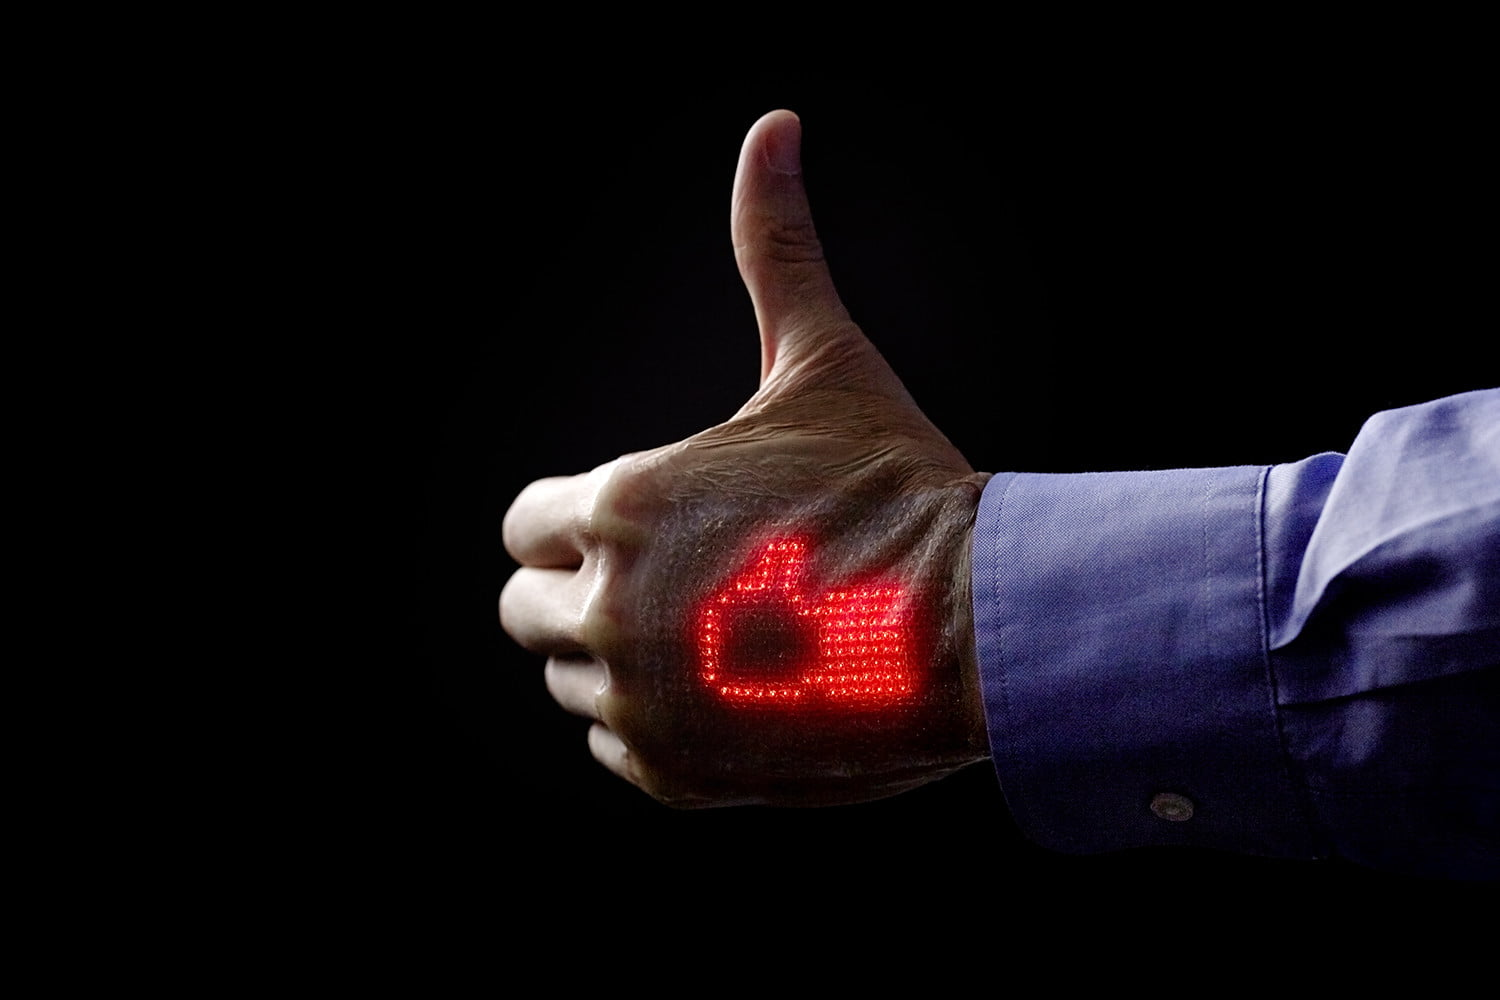 LED-studded 'electronic skin' monitors your health, makes you look like a cyborg